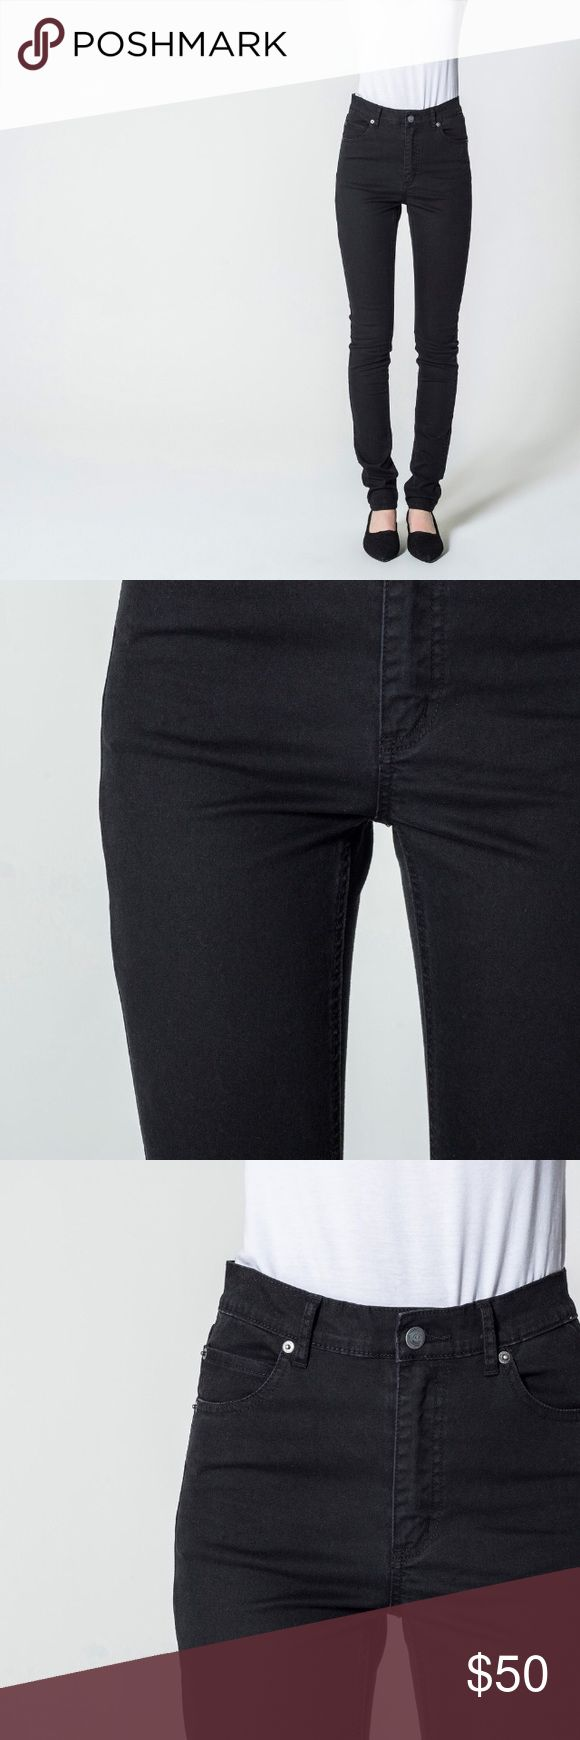 Cheap Monday jeans Previously owned but like new, Second Skin Very Stretch Black Cheap Monday Jeans, high waisted. Cheap Monday Jeans Skinny